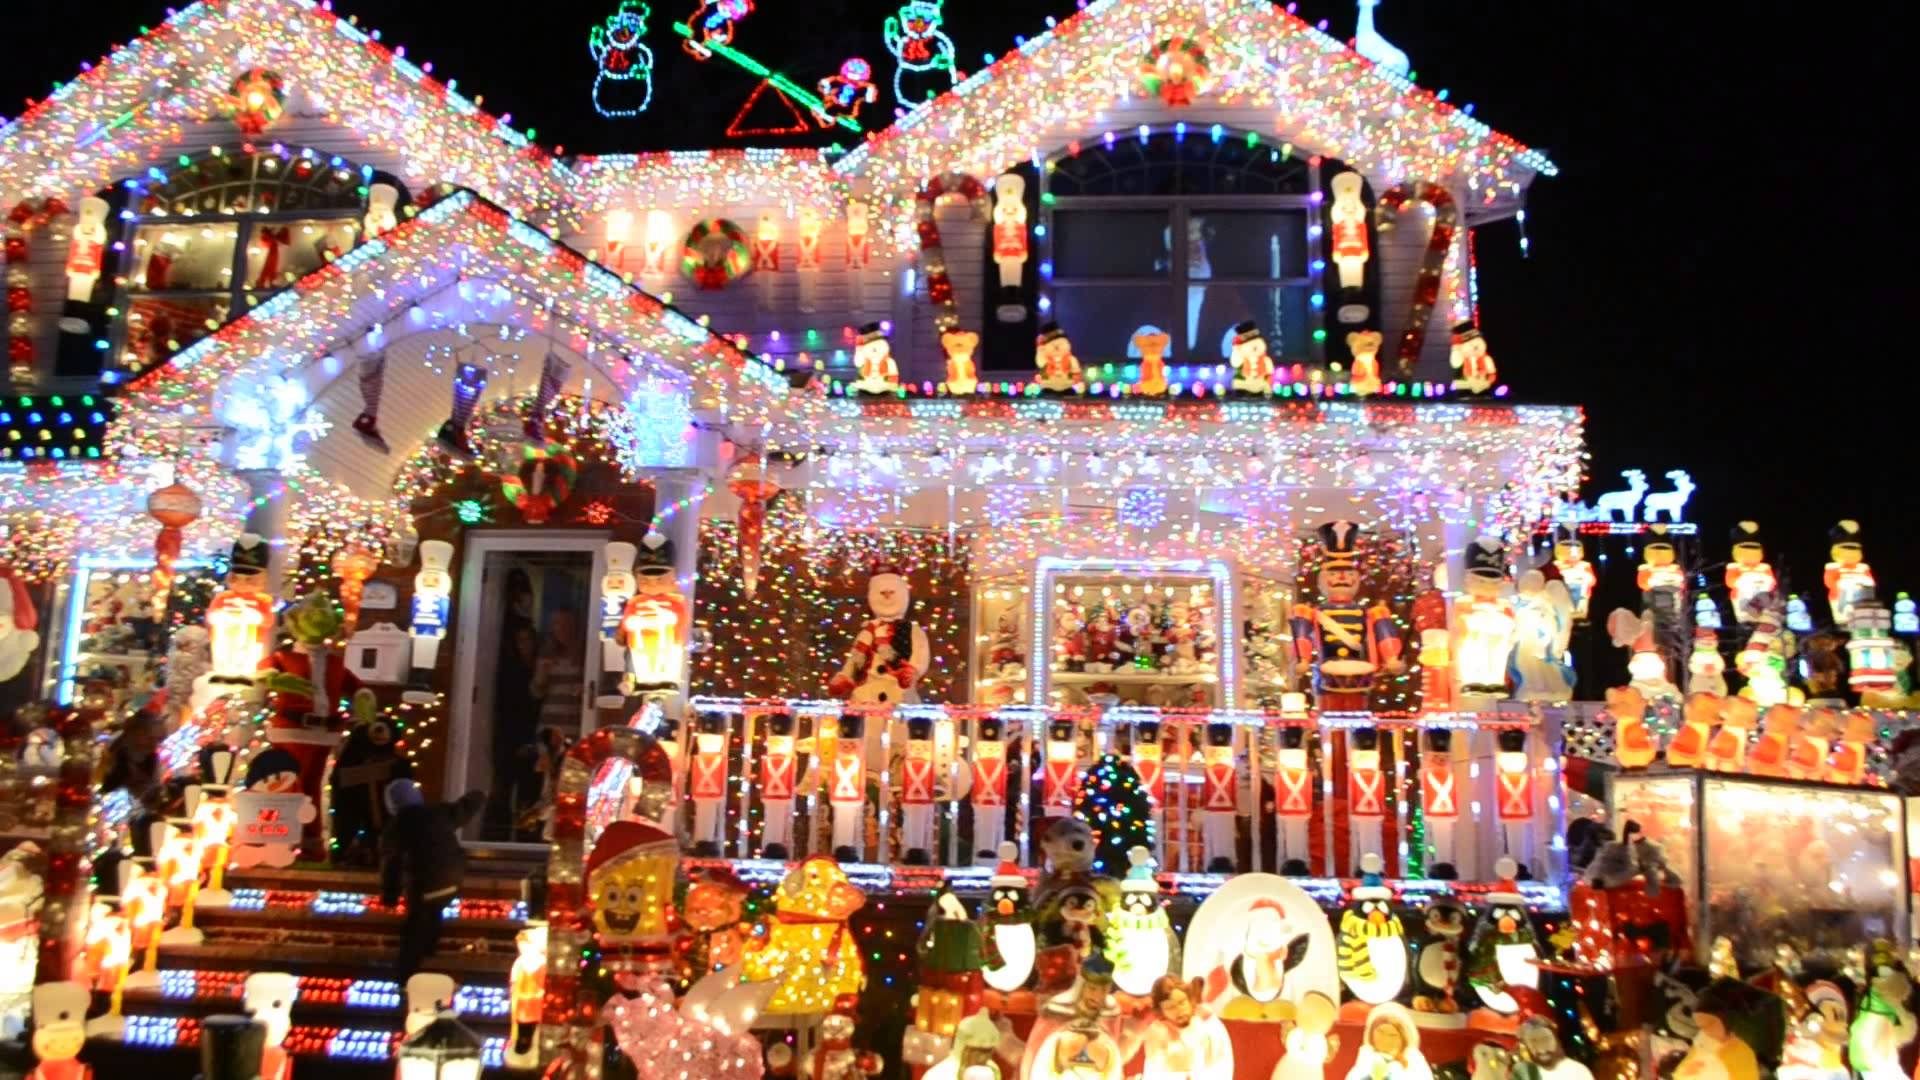 My FAVE Great Christmas Light Fight Winner – 911 Fireman in NY ...